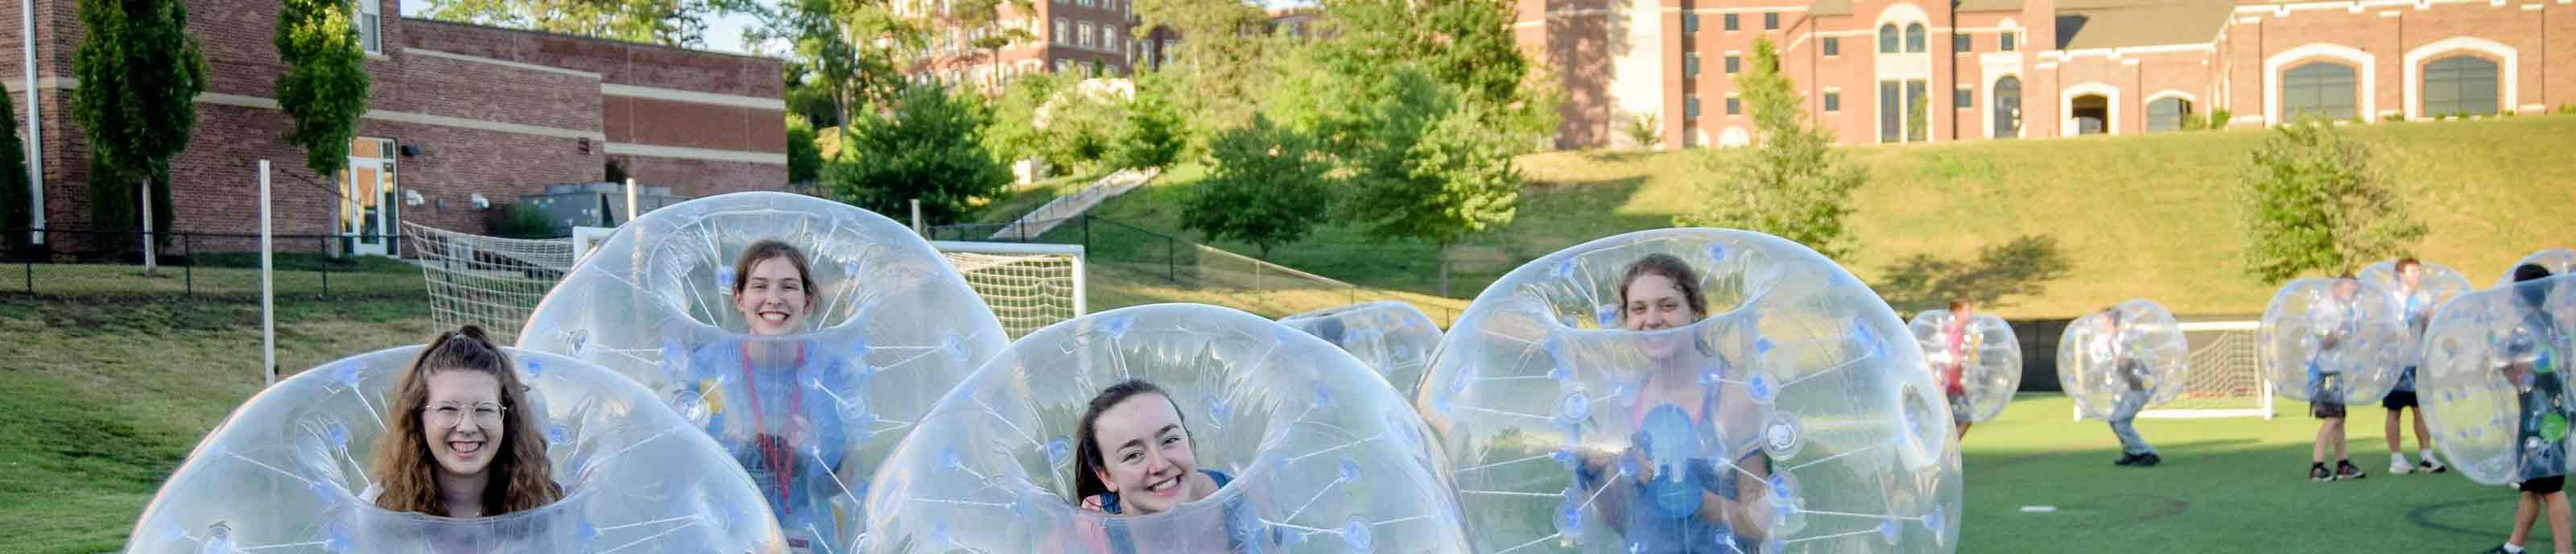 BCYC Immersion bubble soccer